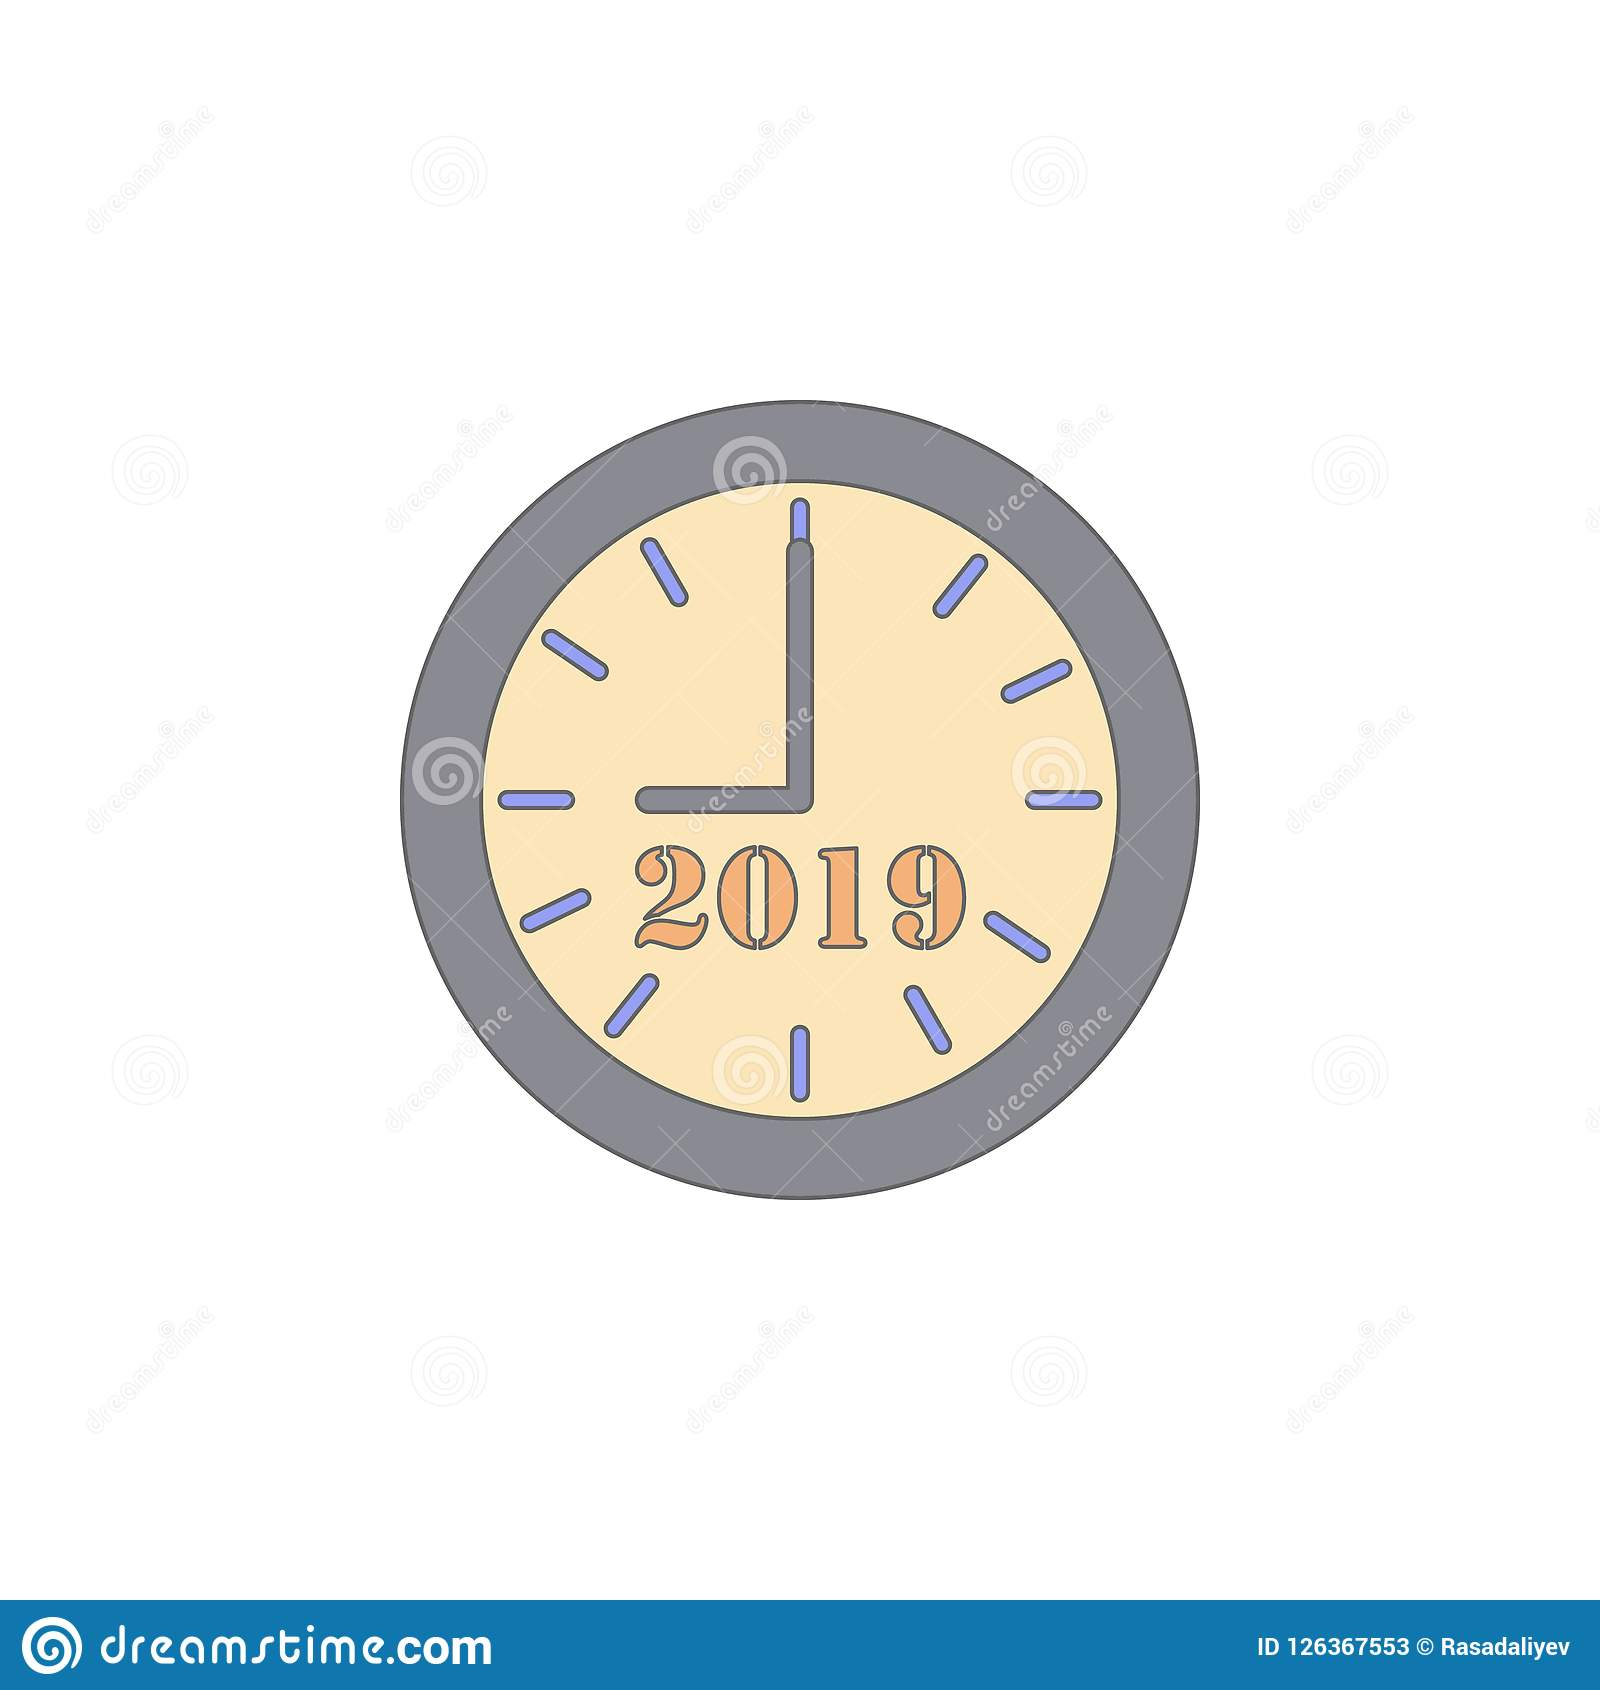 Christmas clock last minutes colored icon. Element of Christmas holiday colored icon. Premium quality graphic design icon. Signs a